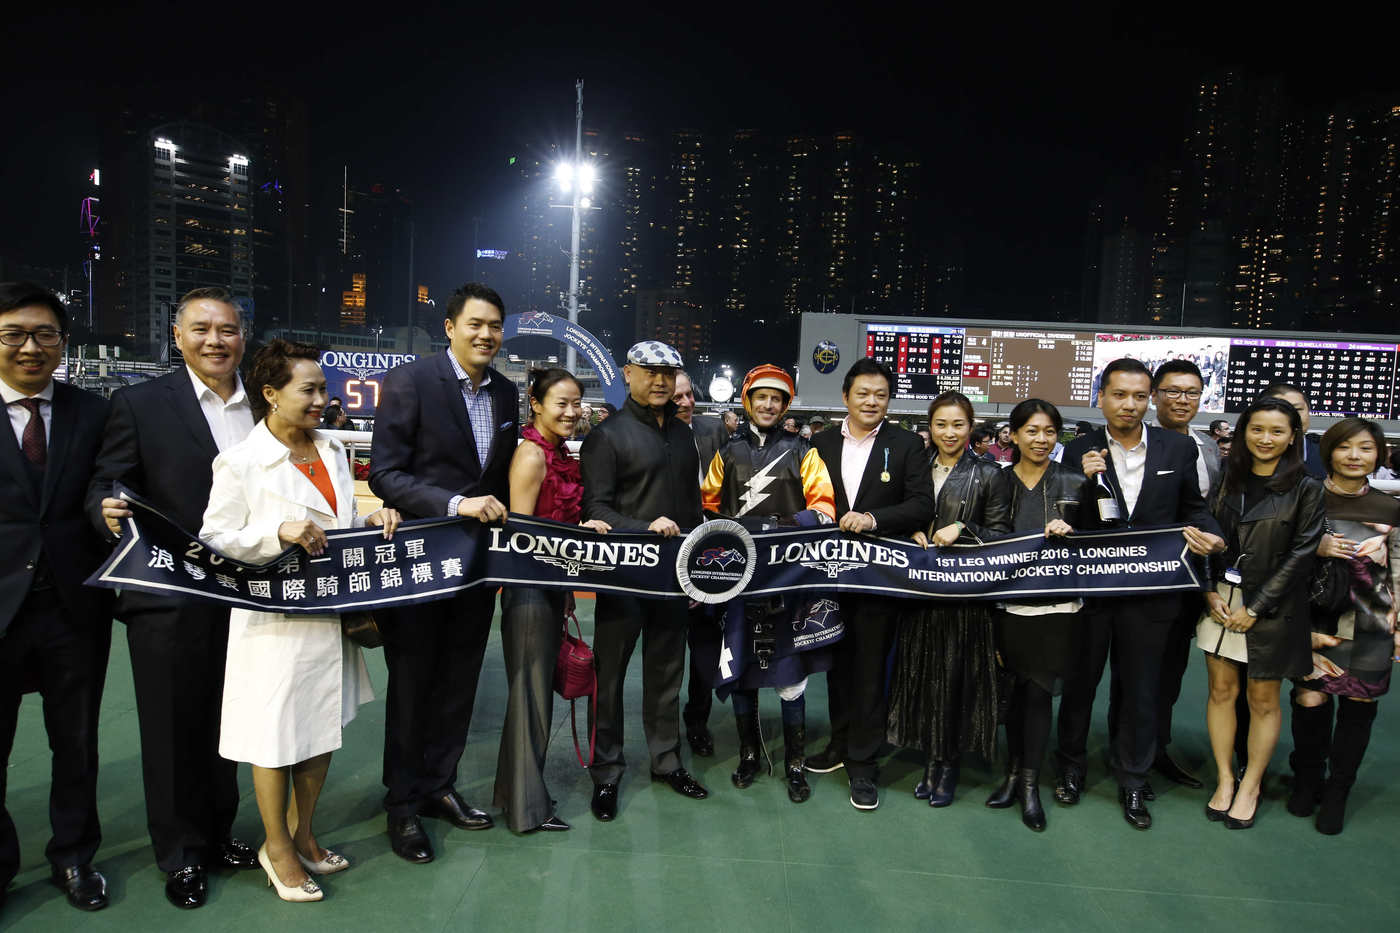 Longines Flat Racing Event: An electric atmosphere for the Longines International Jockeys' Championship 2016 9